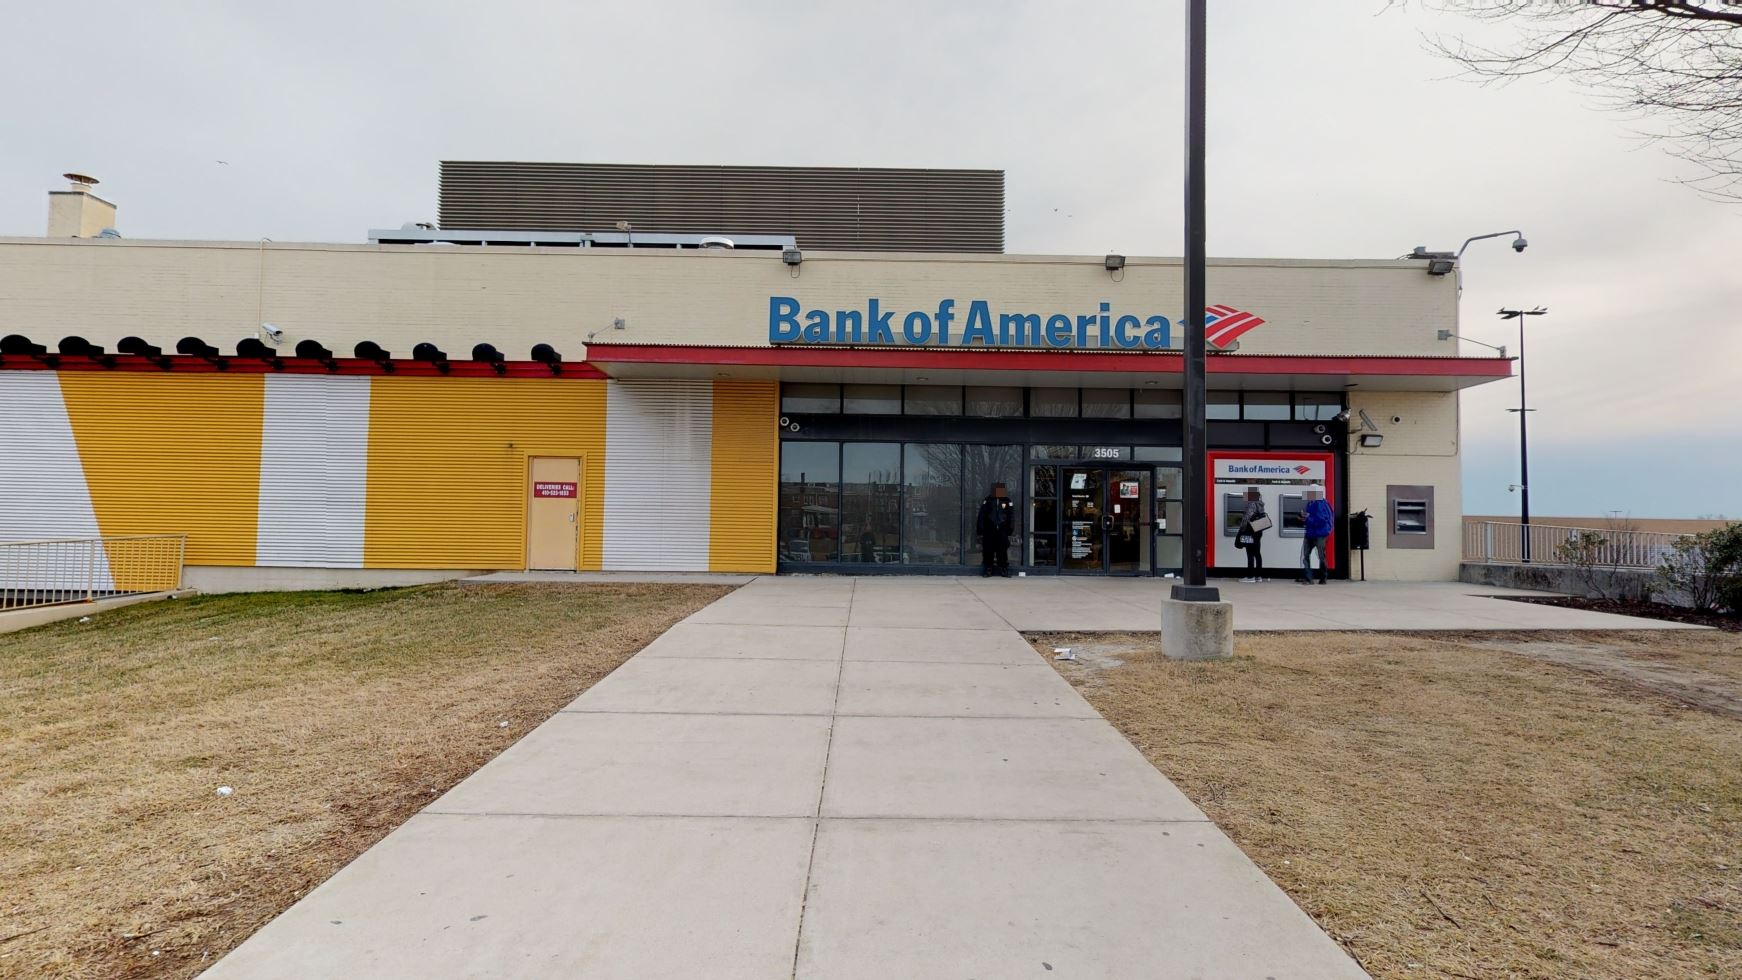 Bank of America financial center with walk-up ATM | 2401 Liberty Heights Ave STE 3140, Baltimore, MD 21215